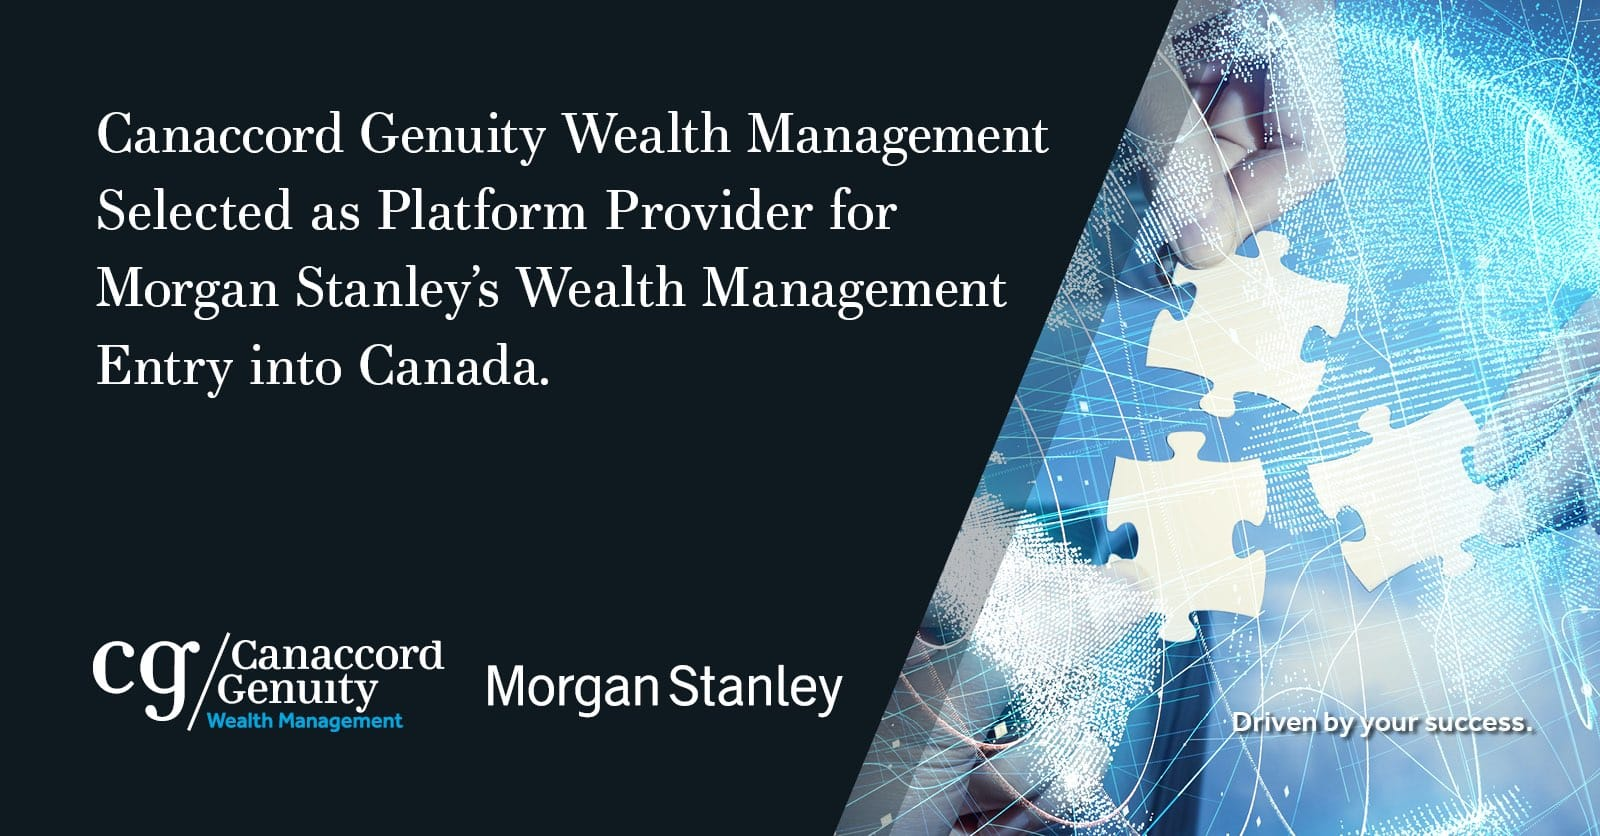 Canaccord Genuity Wealth Management Selected as Platform Provider for Morgan Stanley's Wealth Management Entry Into Canada